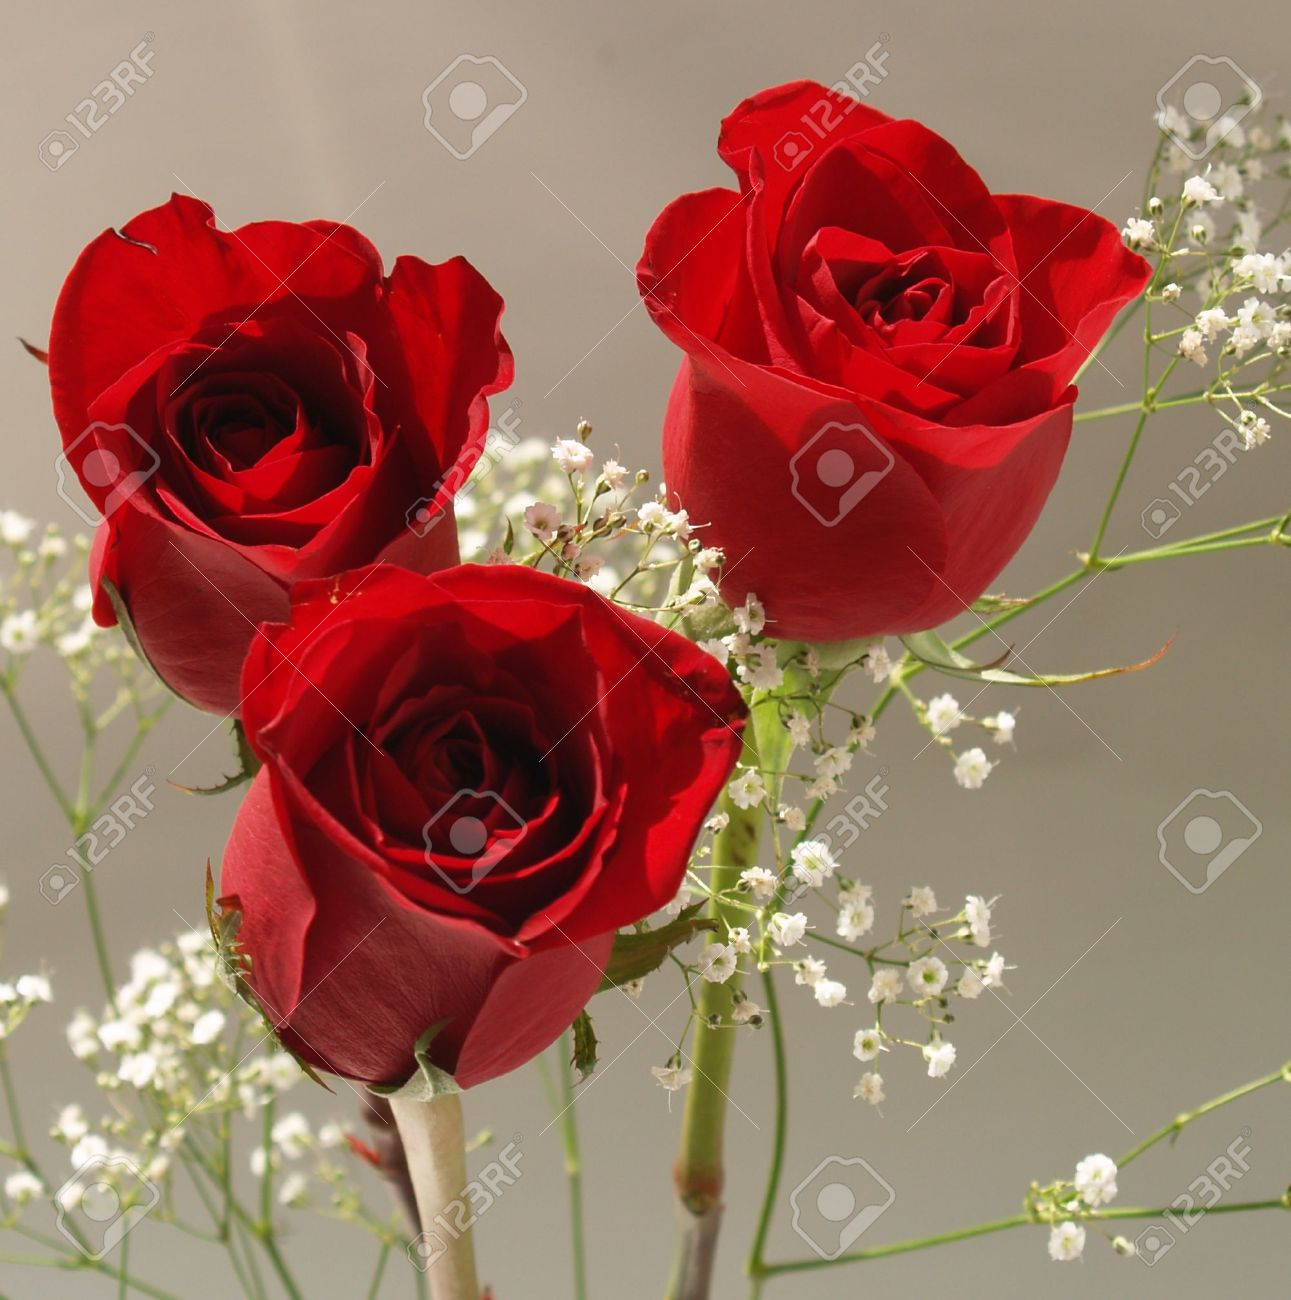 3 red roses images